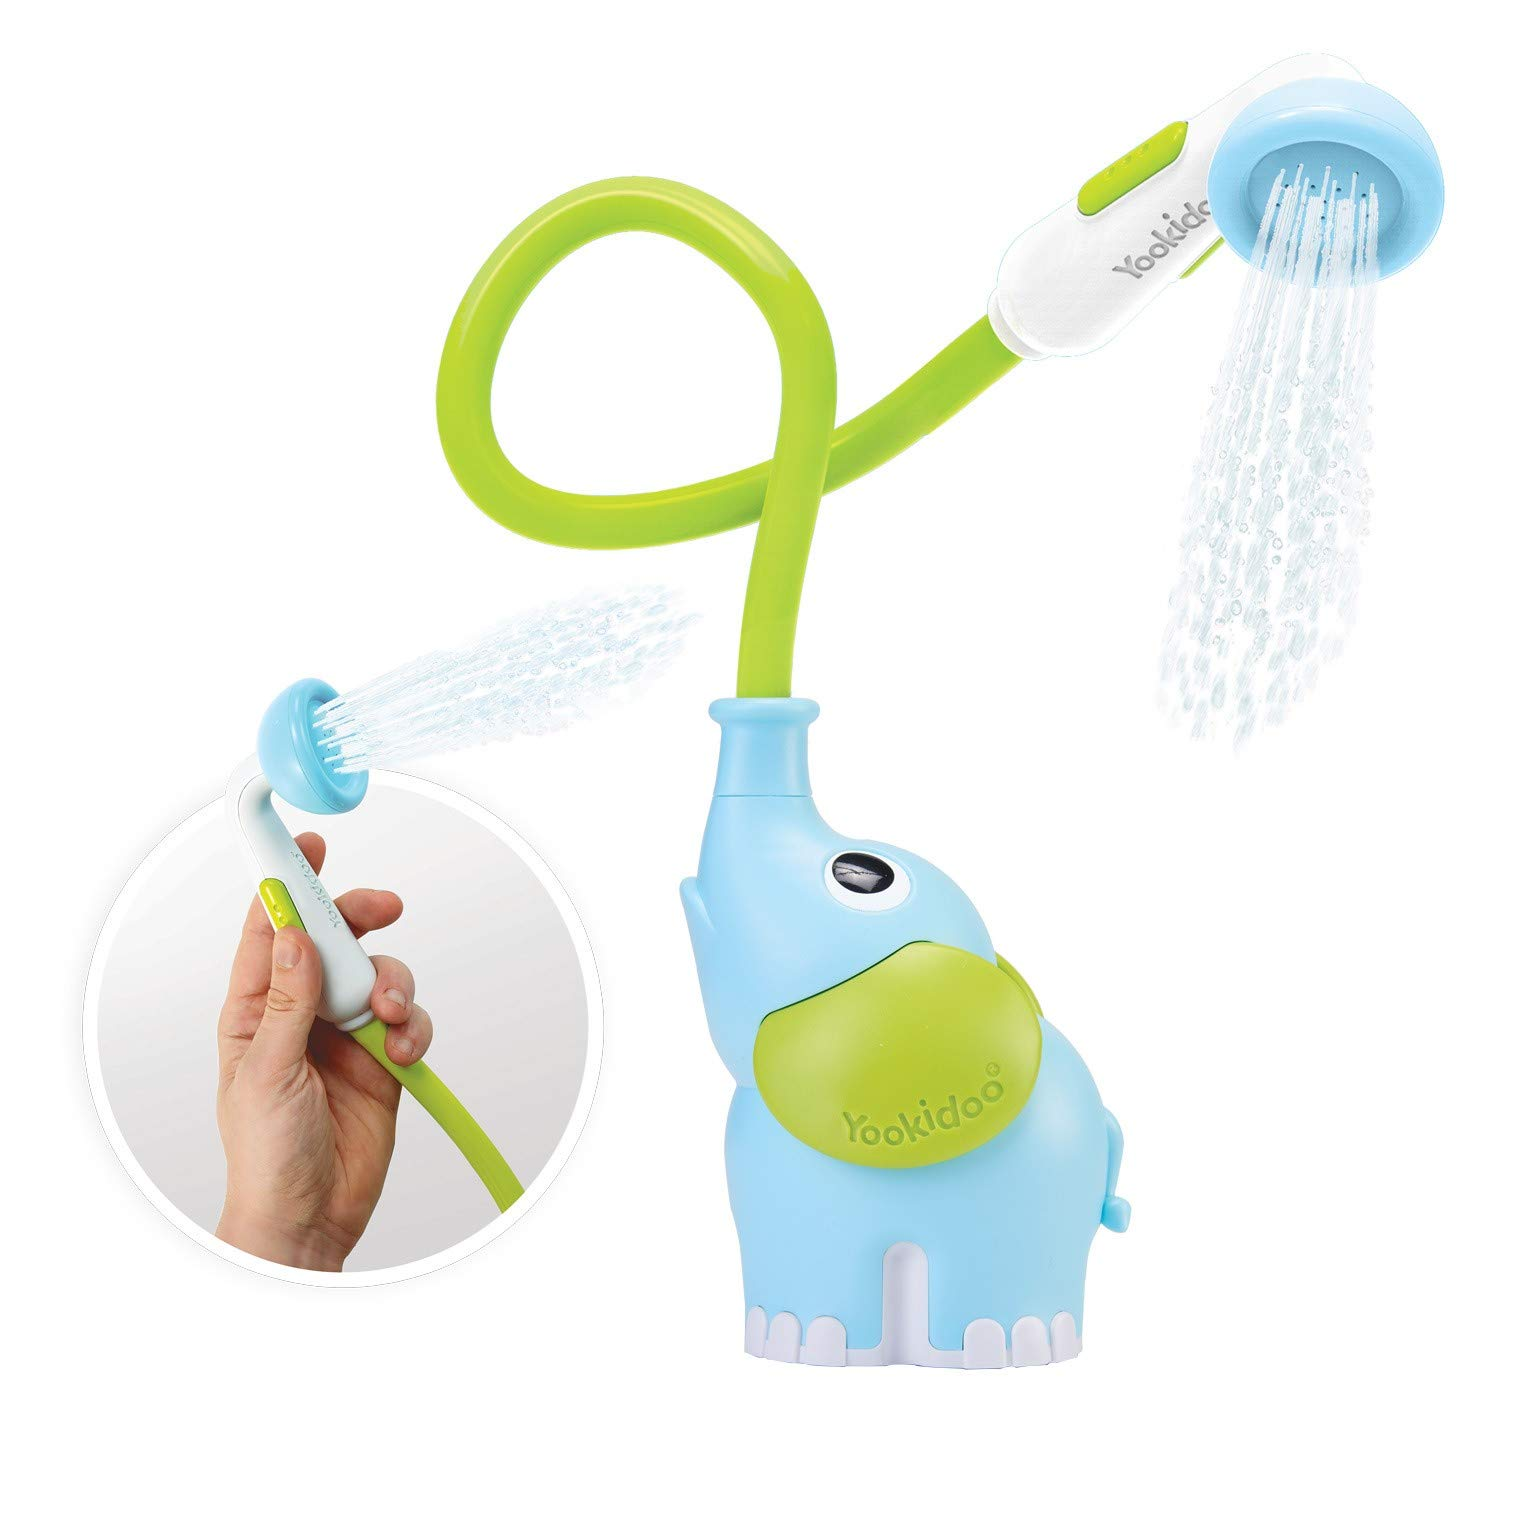 Yookidoo Baby Bath Shower Head - Elephant Water Pump and Trunk Spout - for Newborn Babies in Tub Or Sink by Yookidoo